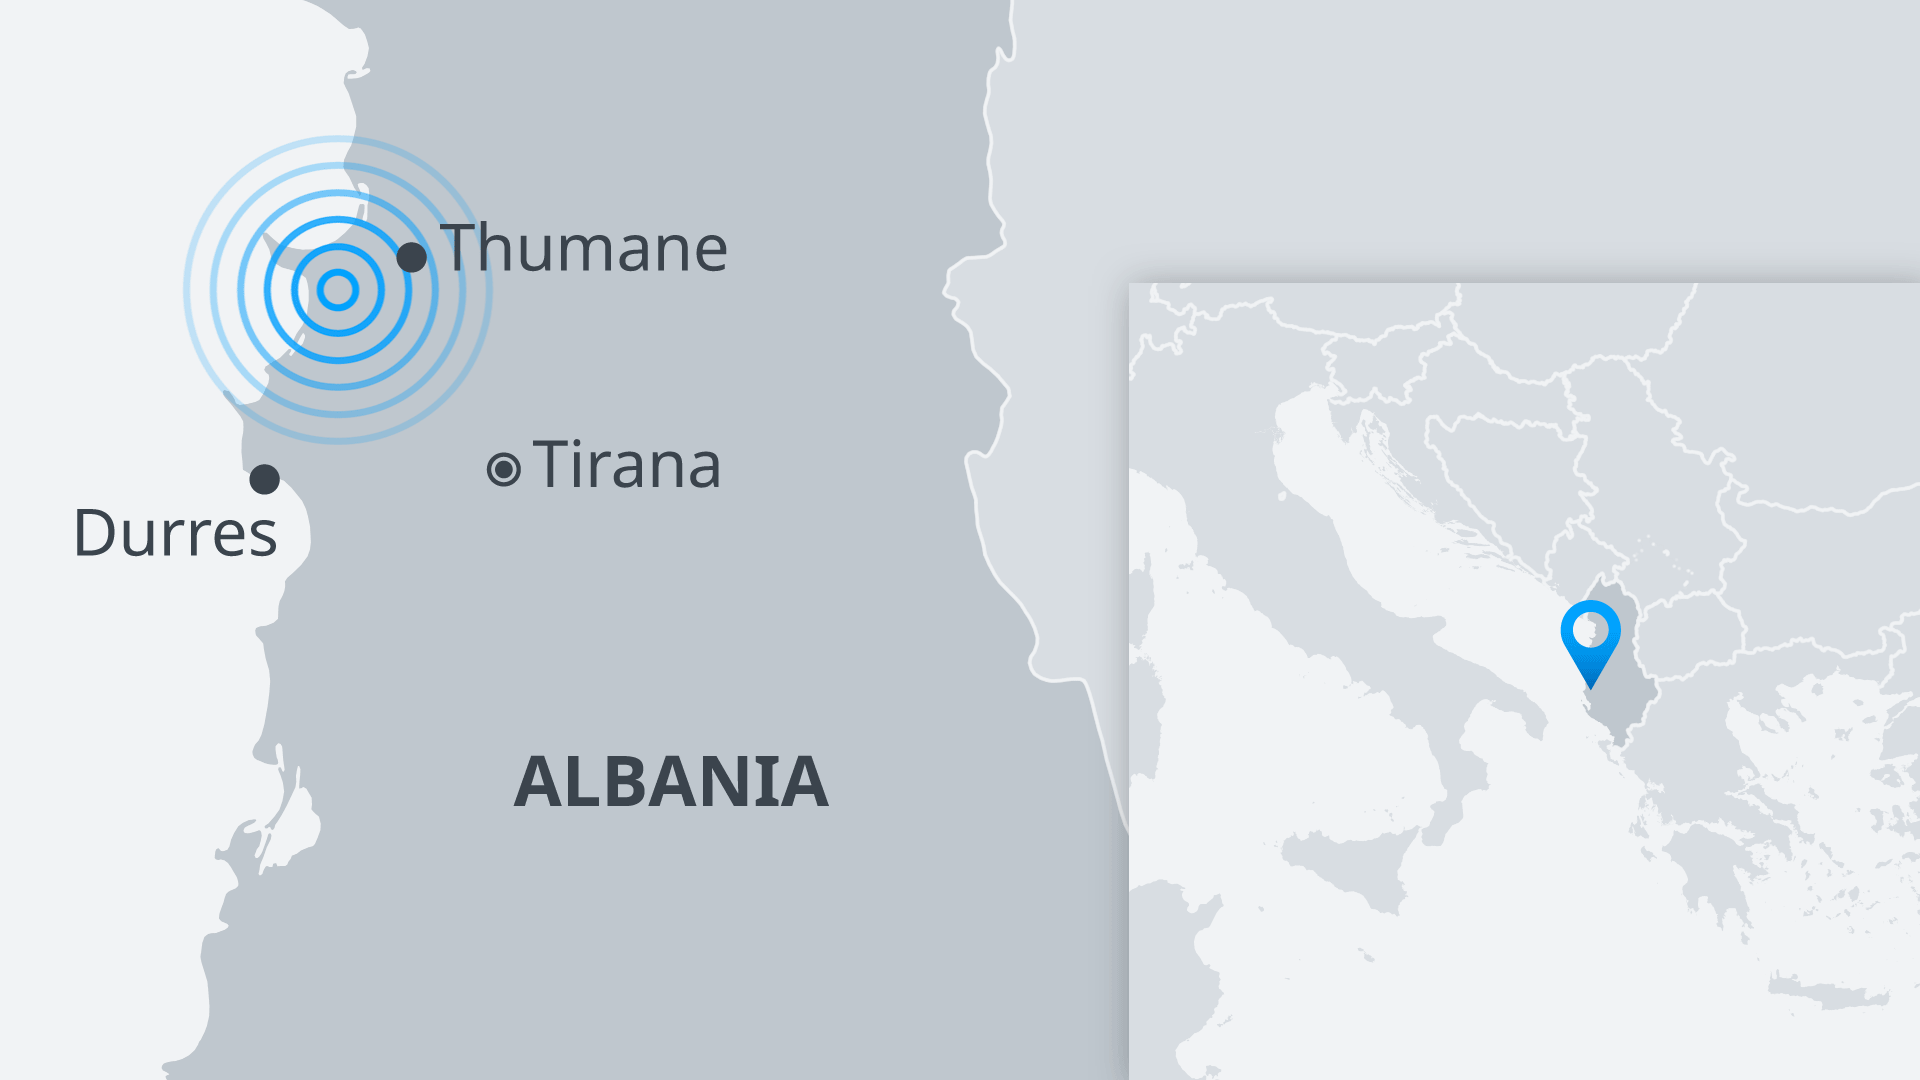 Map of Albania showing Thumane, Durres and tirana